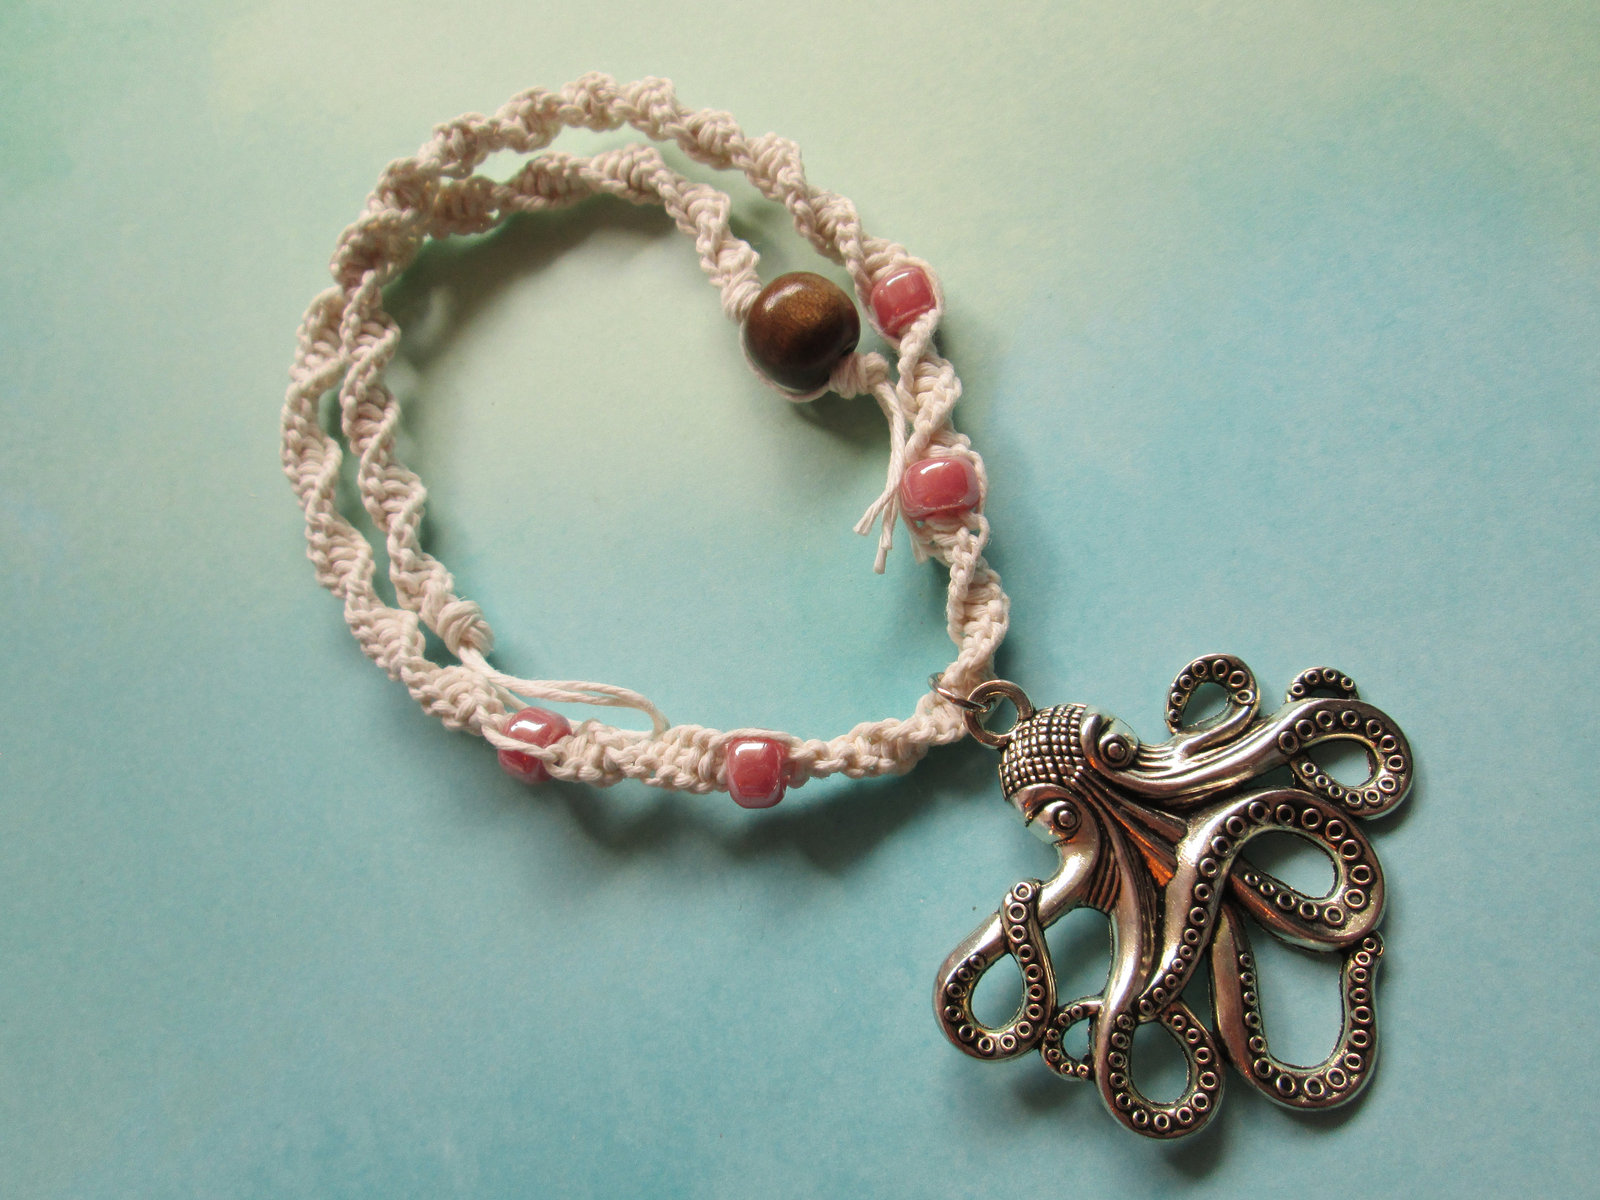 Handmade White Hemp Necklace with Steampunk Silver Octopus Charm Pendant